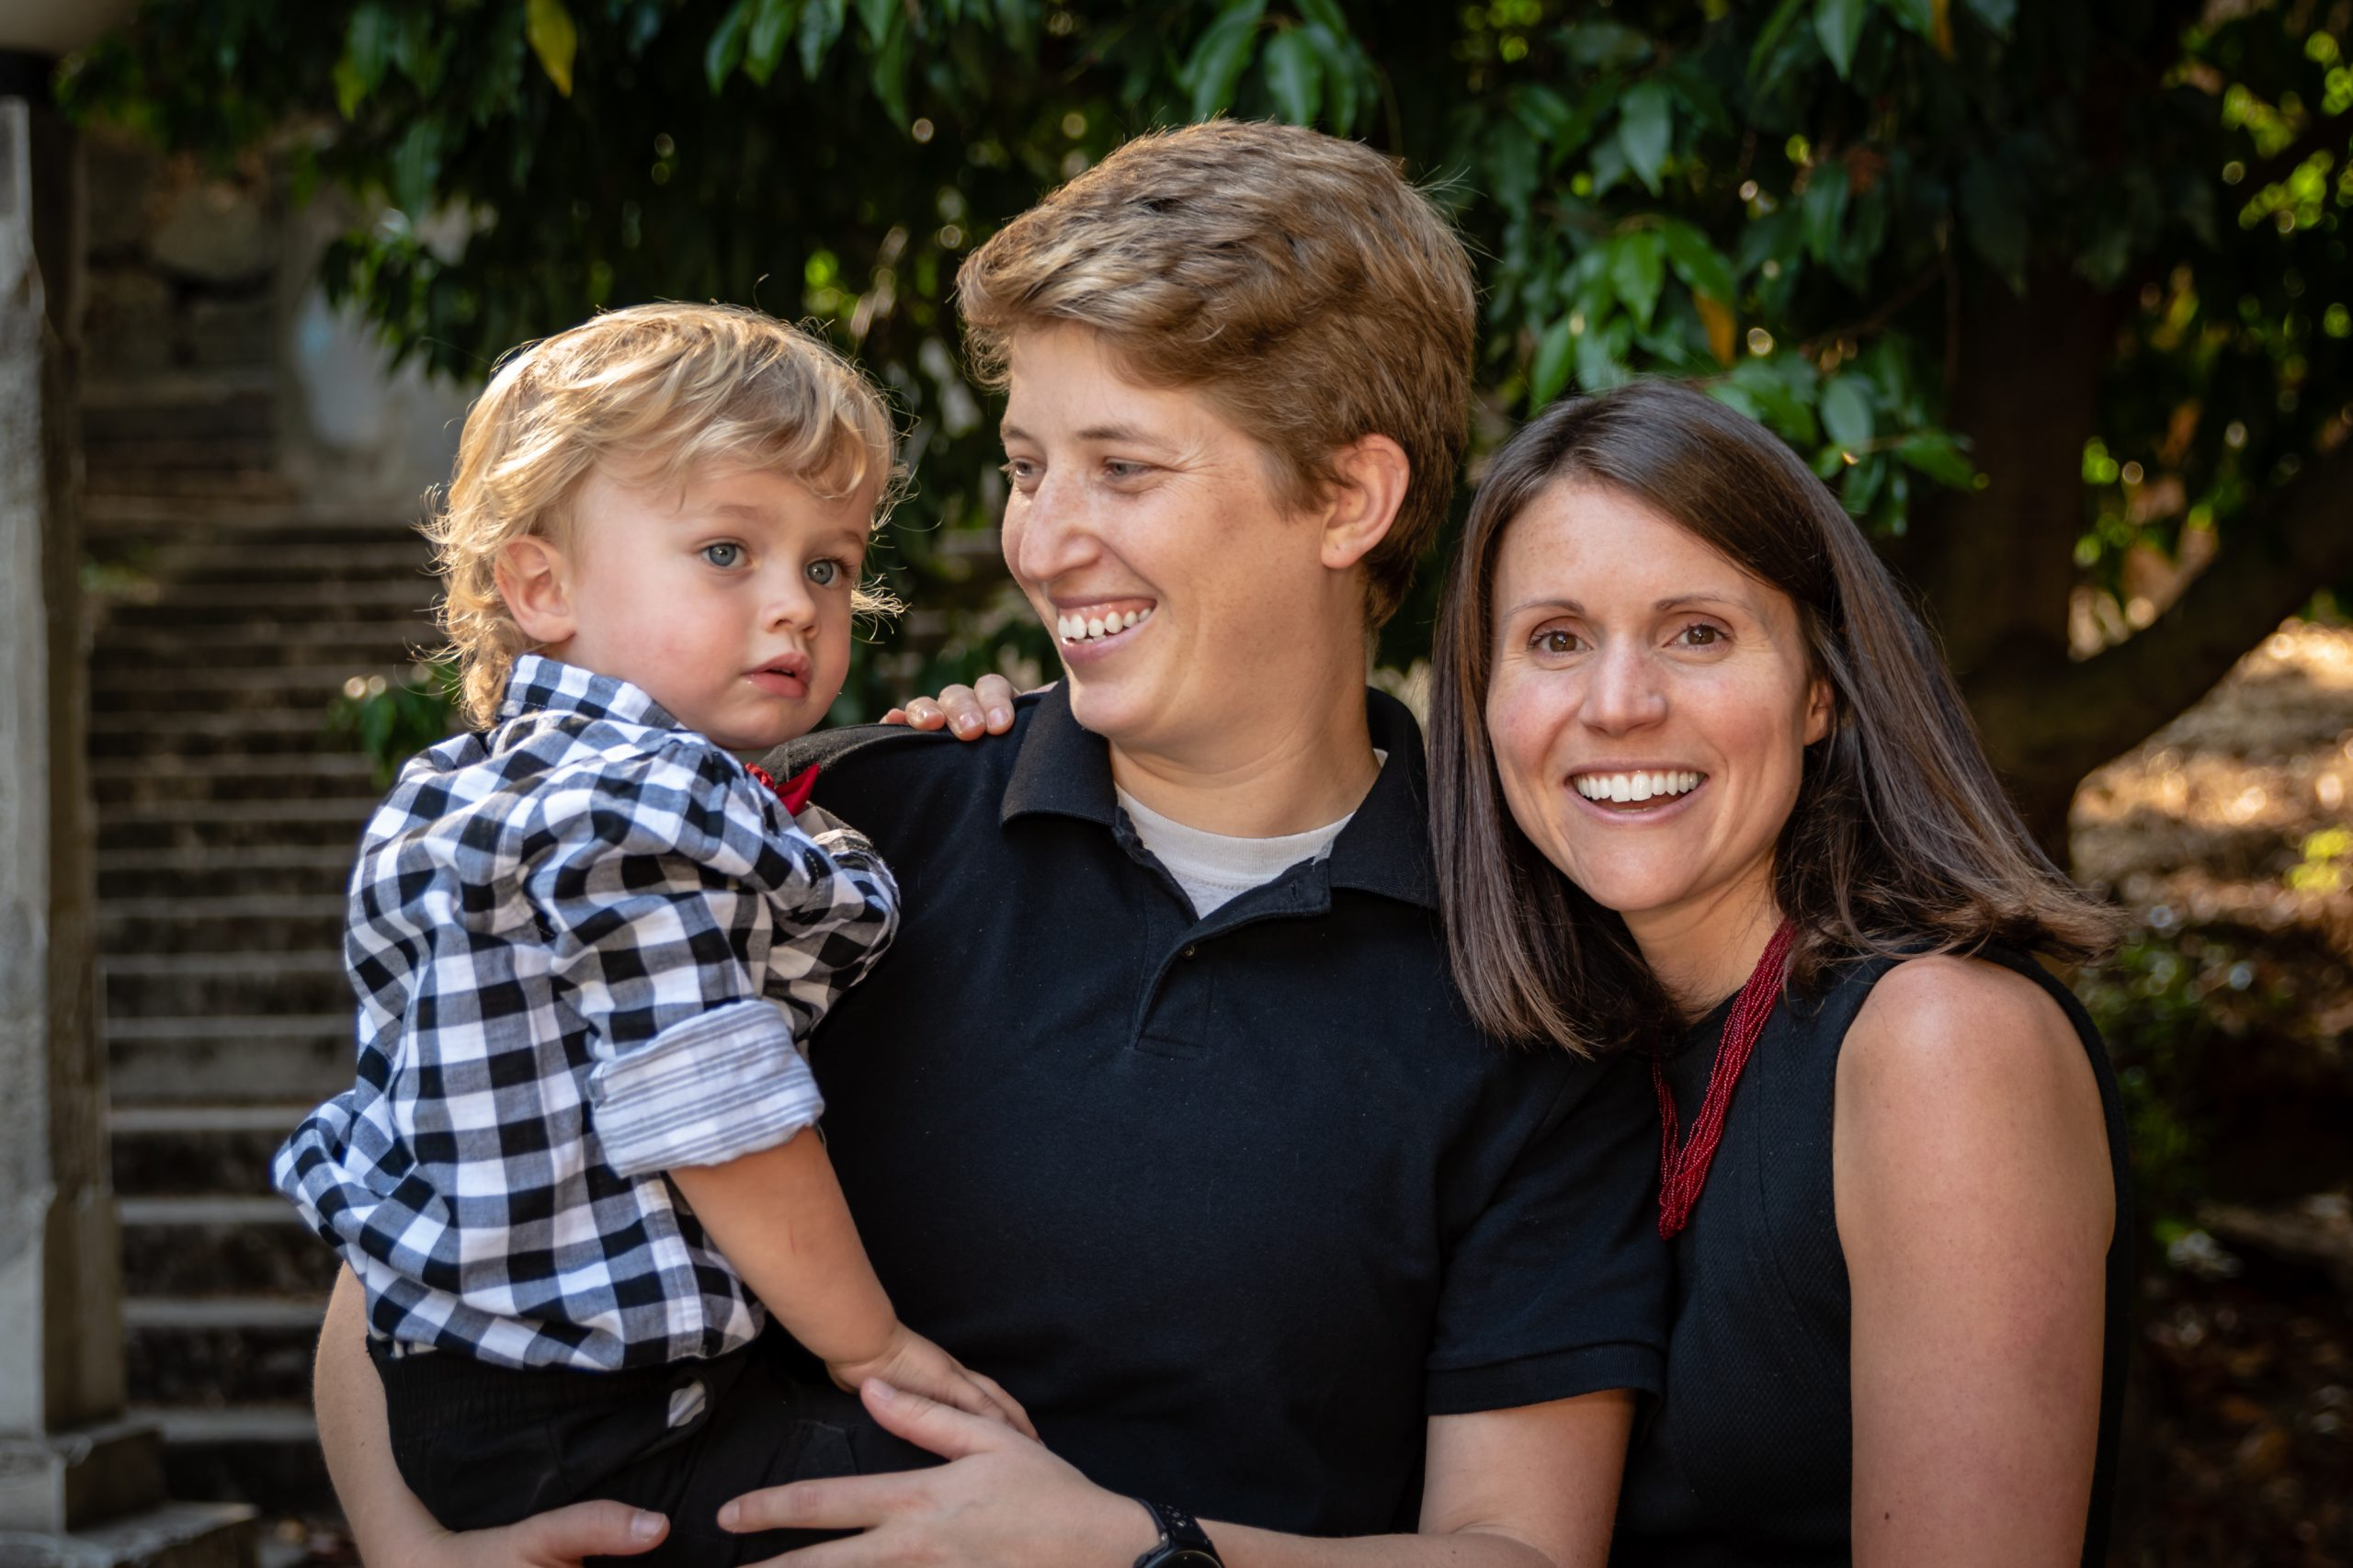 Family Portrait Photograph at Lithia Park in Ashland Oregon